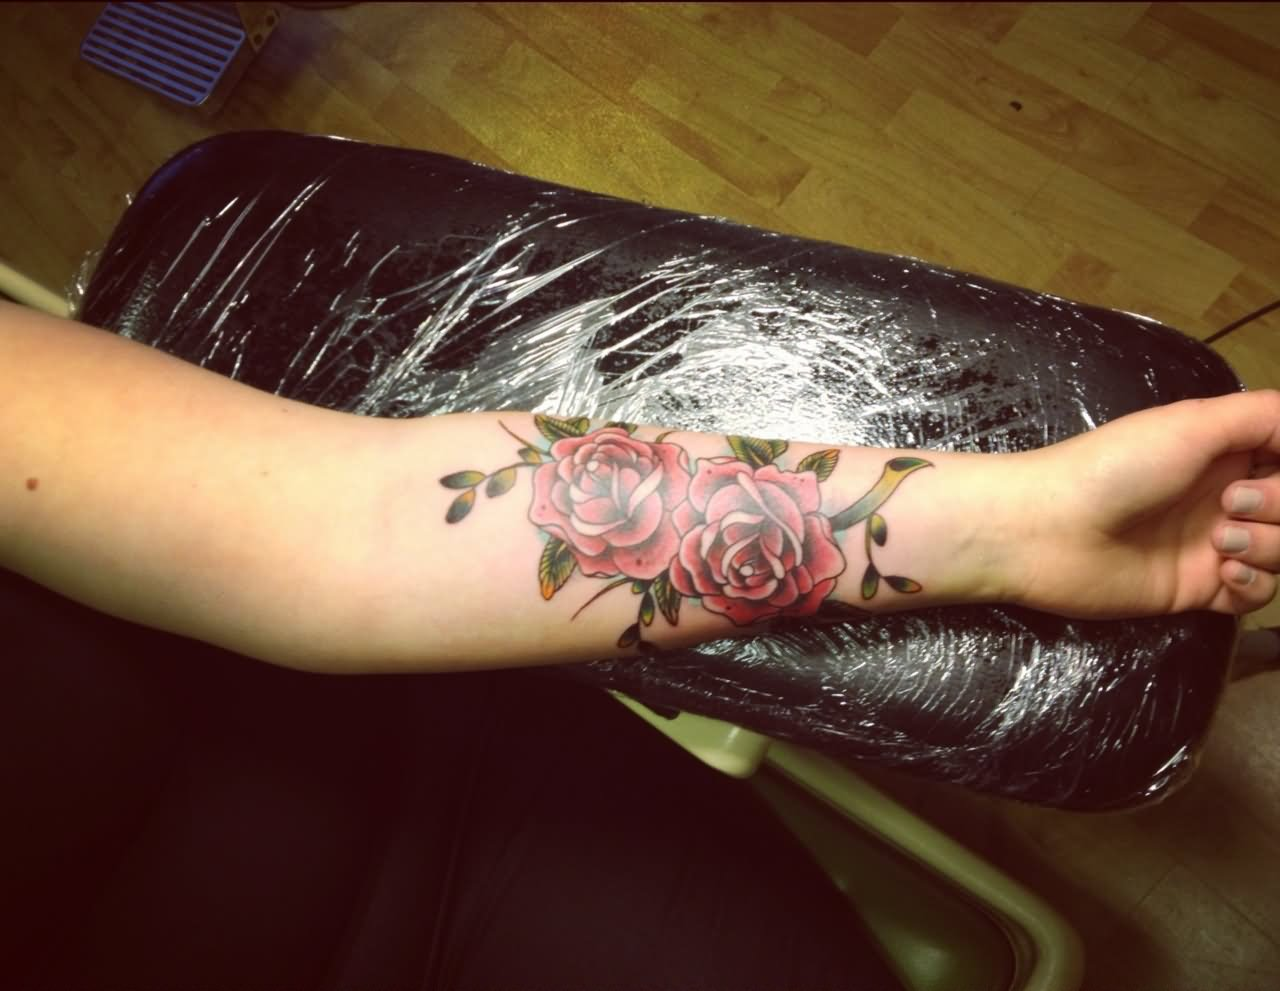 43 Beautiful Forearm Rose Tattoos Ideas And Designs